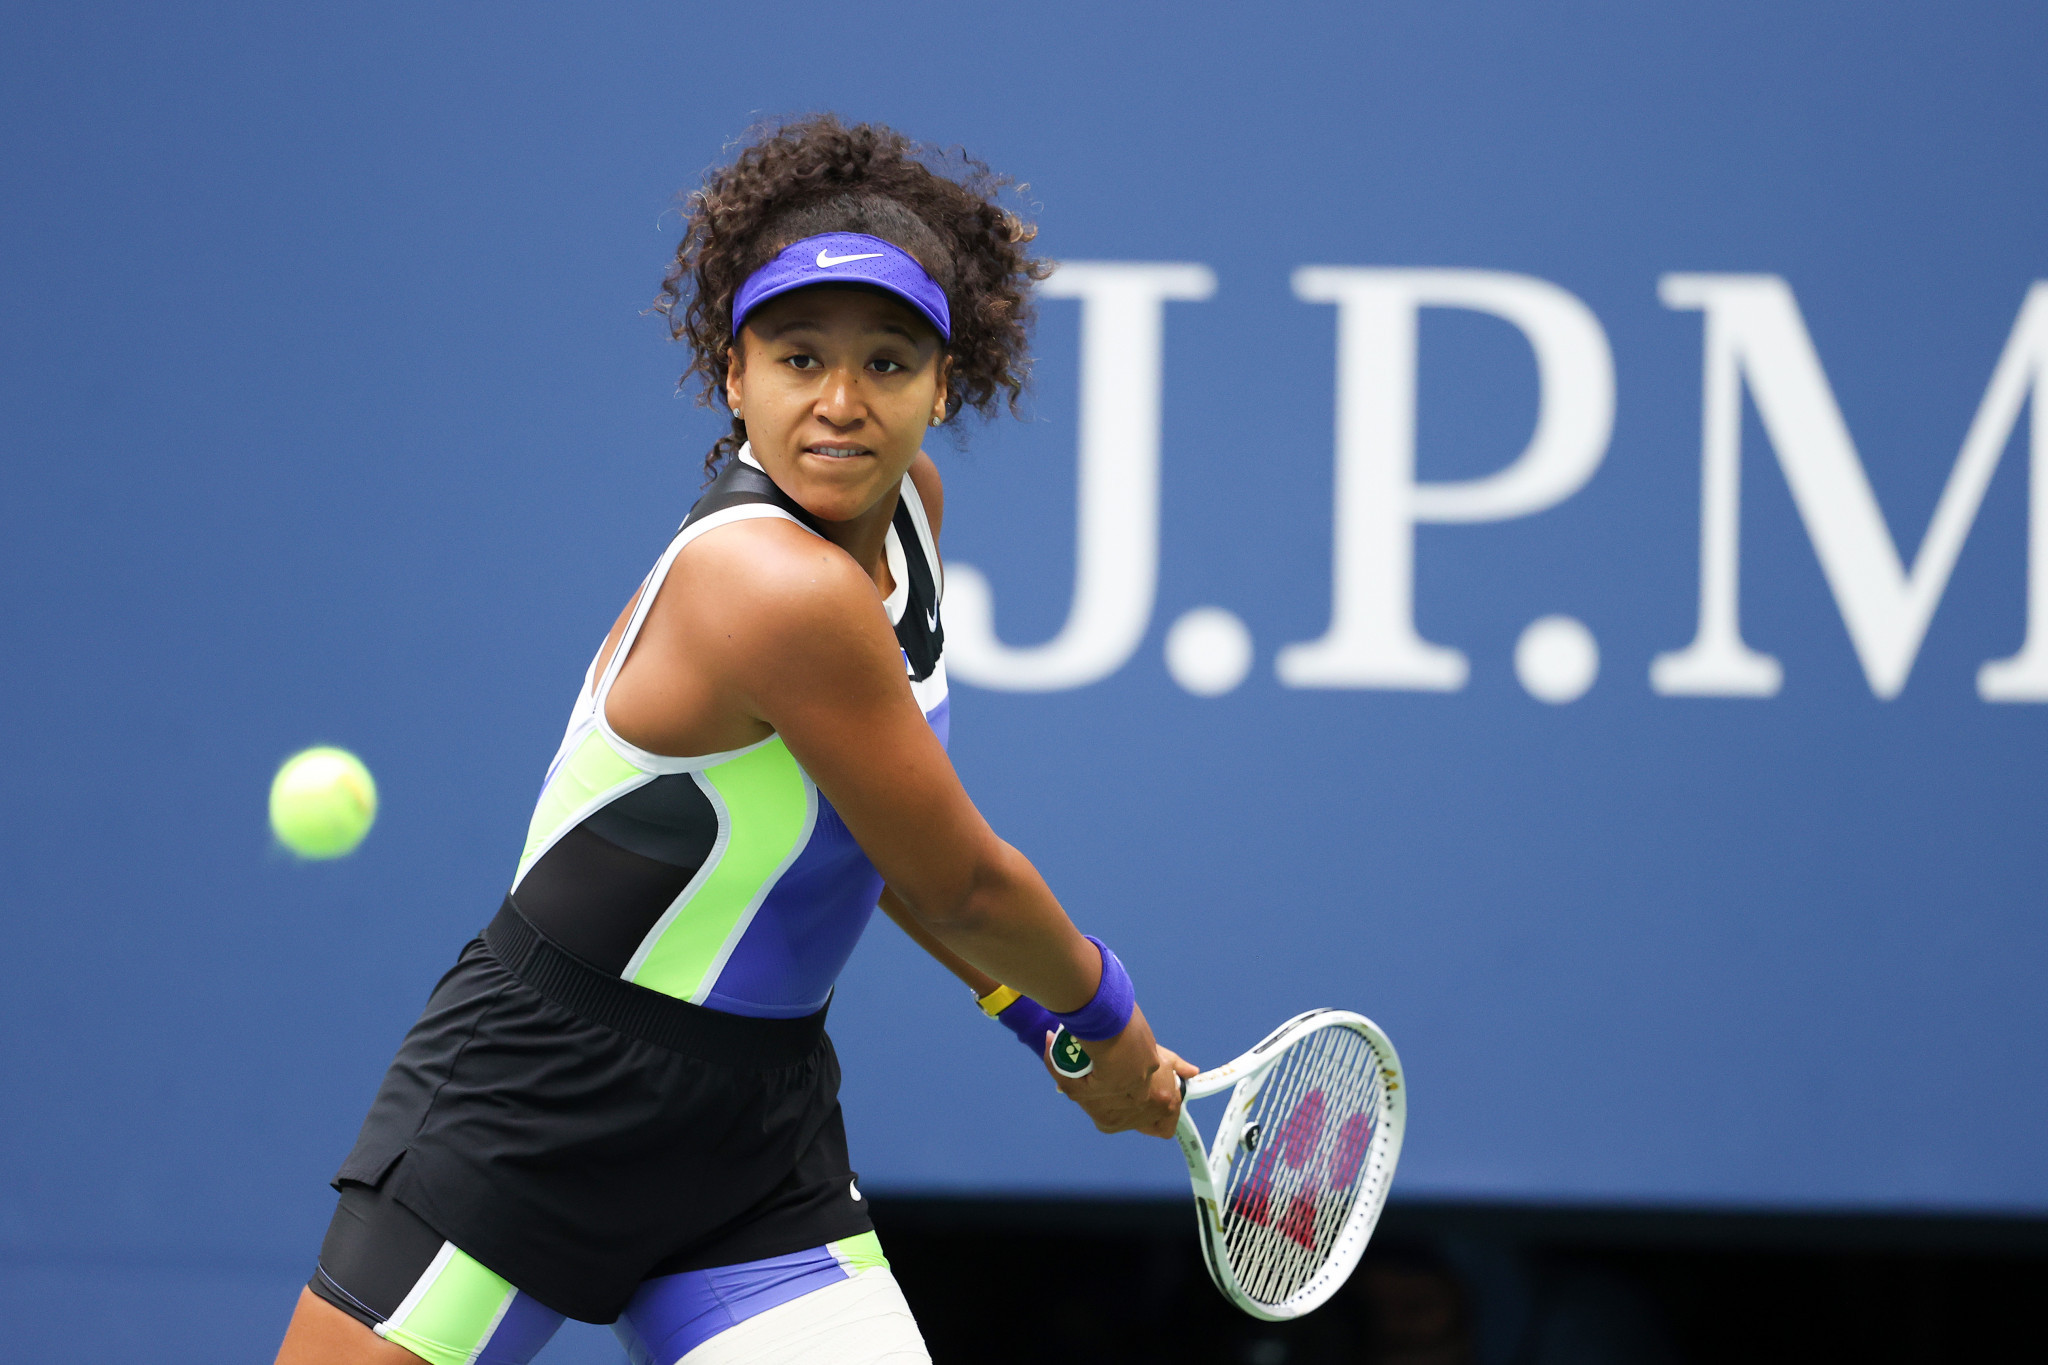 Osaka, 22, was made to battle for her third Grand Slam title by unseeded Belarusian Azarenka ©Getty Images